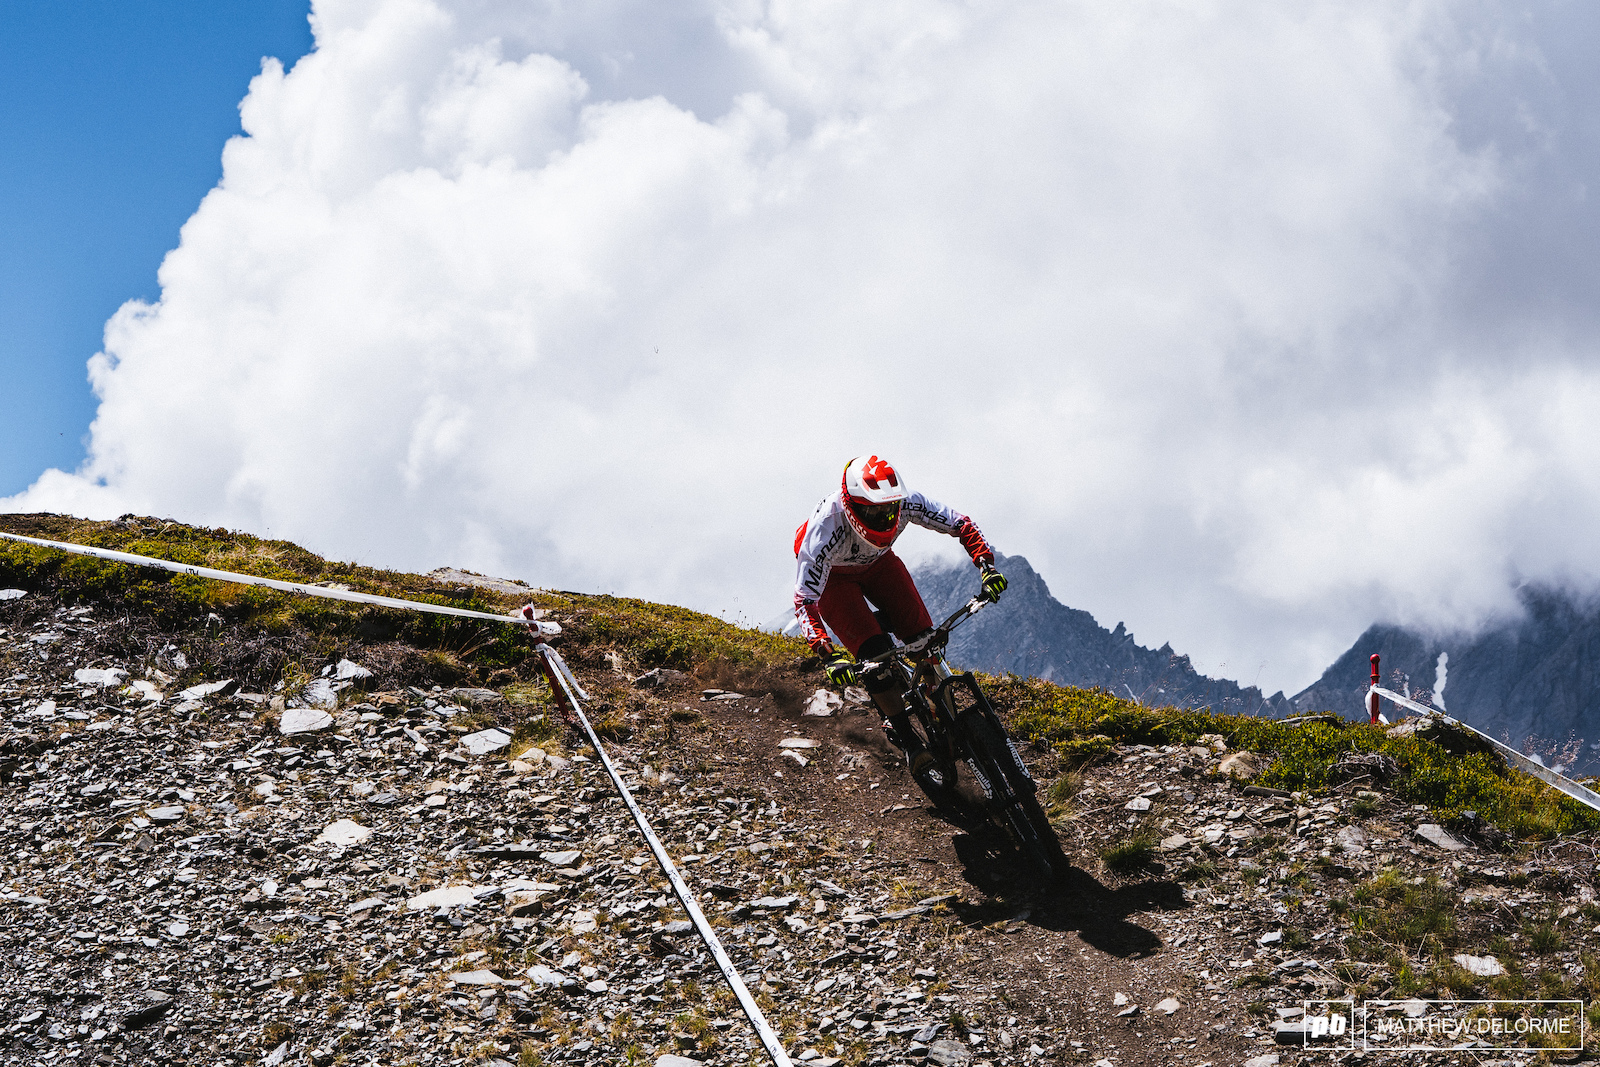 Jose Borges takes tenth here in La Thuile. Big weekend for the BH rider.